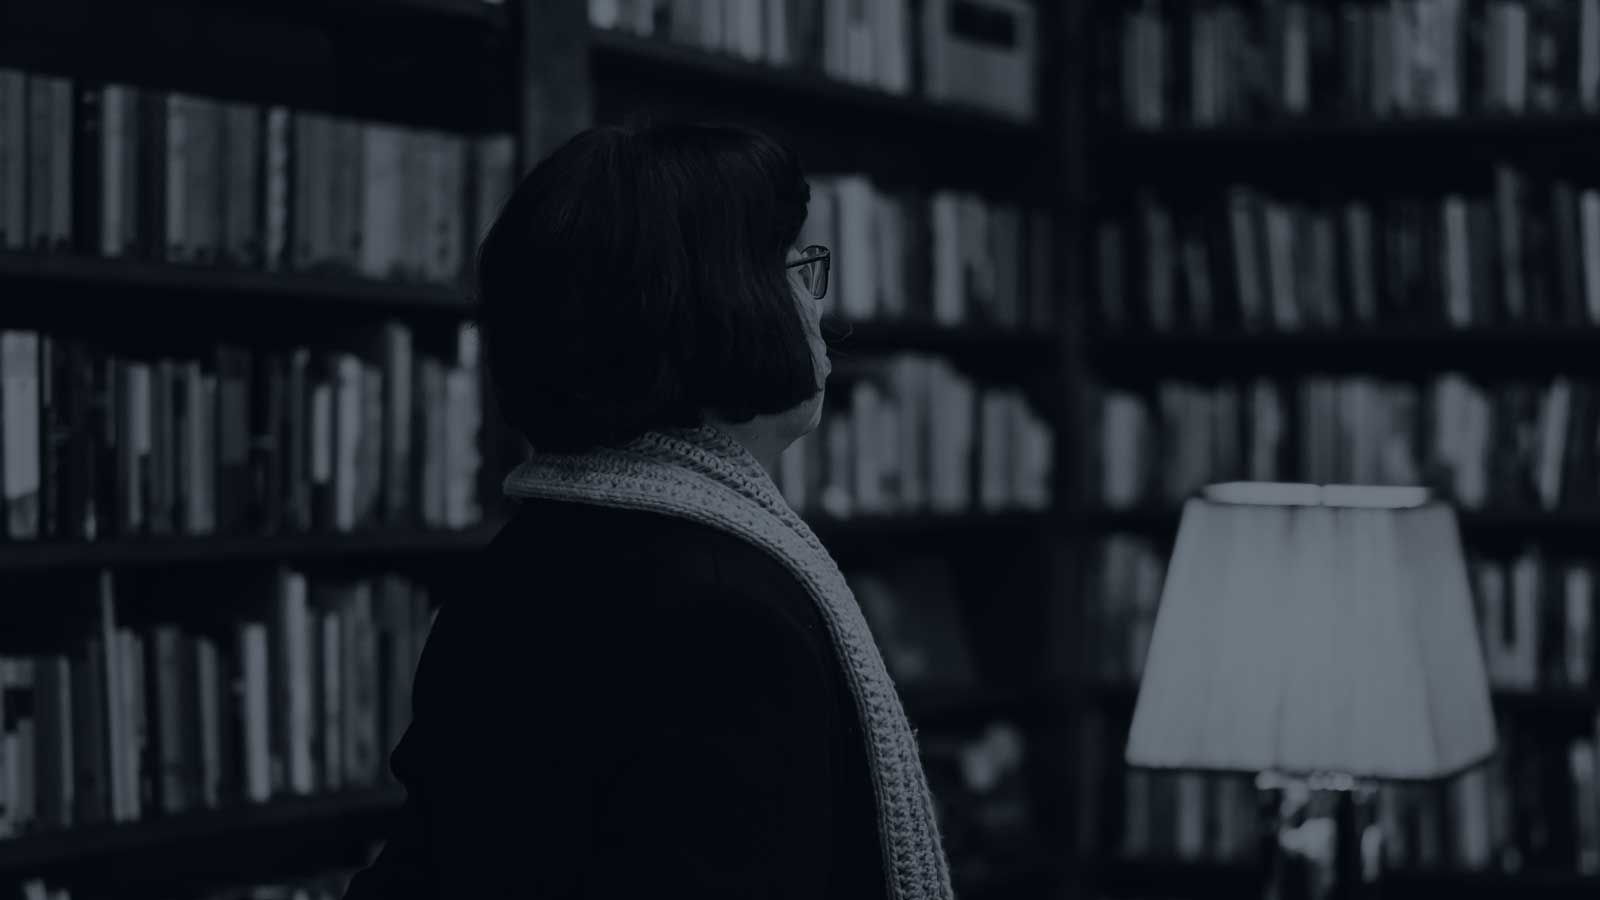 Thumbnail of a woman in a library